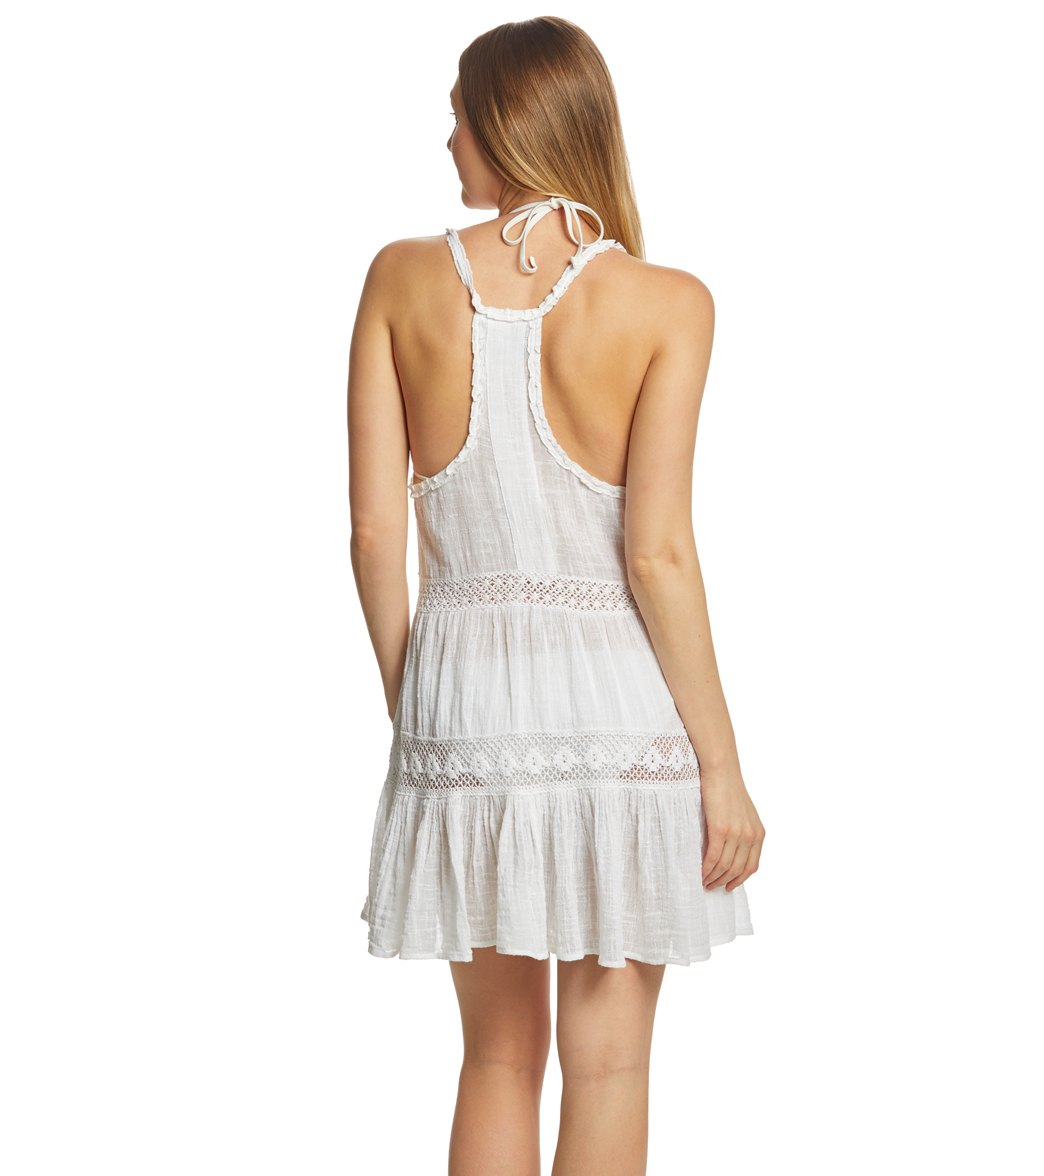 becfaa0993 Polo Ralph Lauren Cotton Slub Coverup Dress at SwimOutlet.com - Free ...